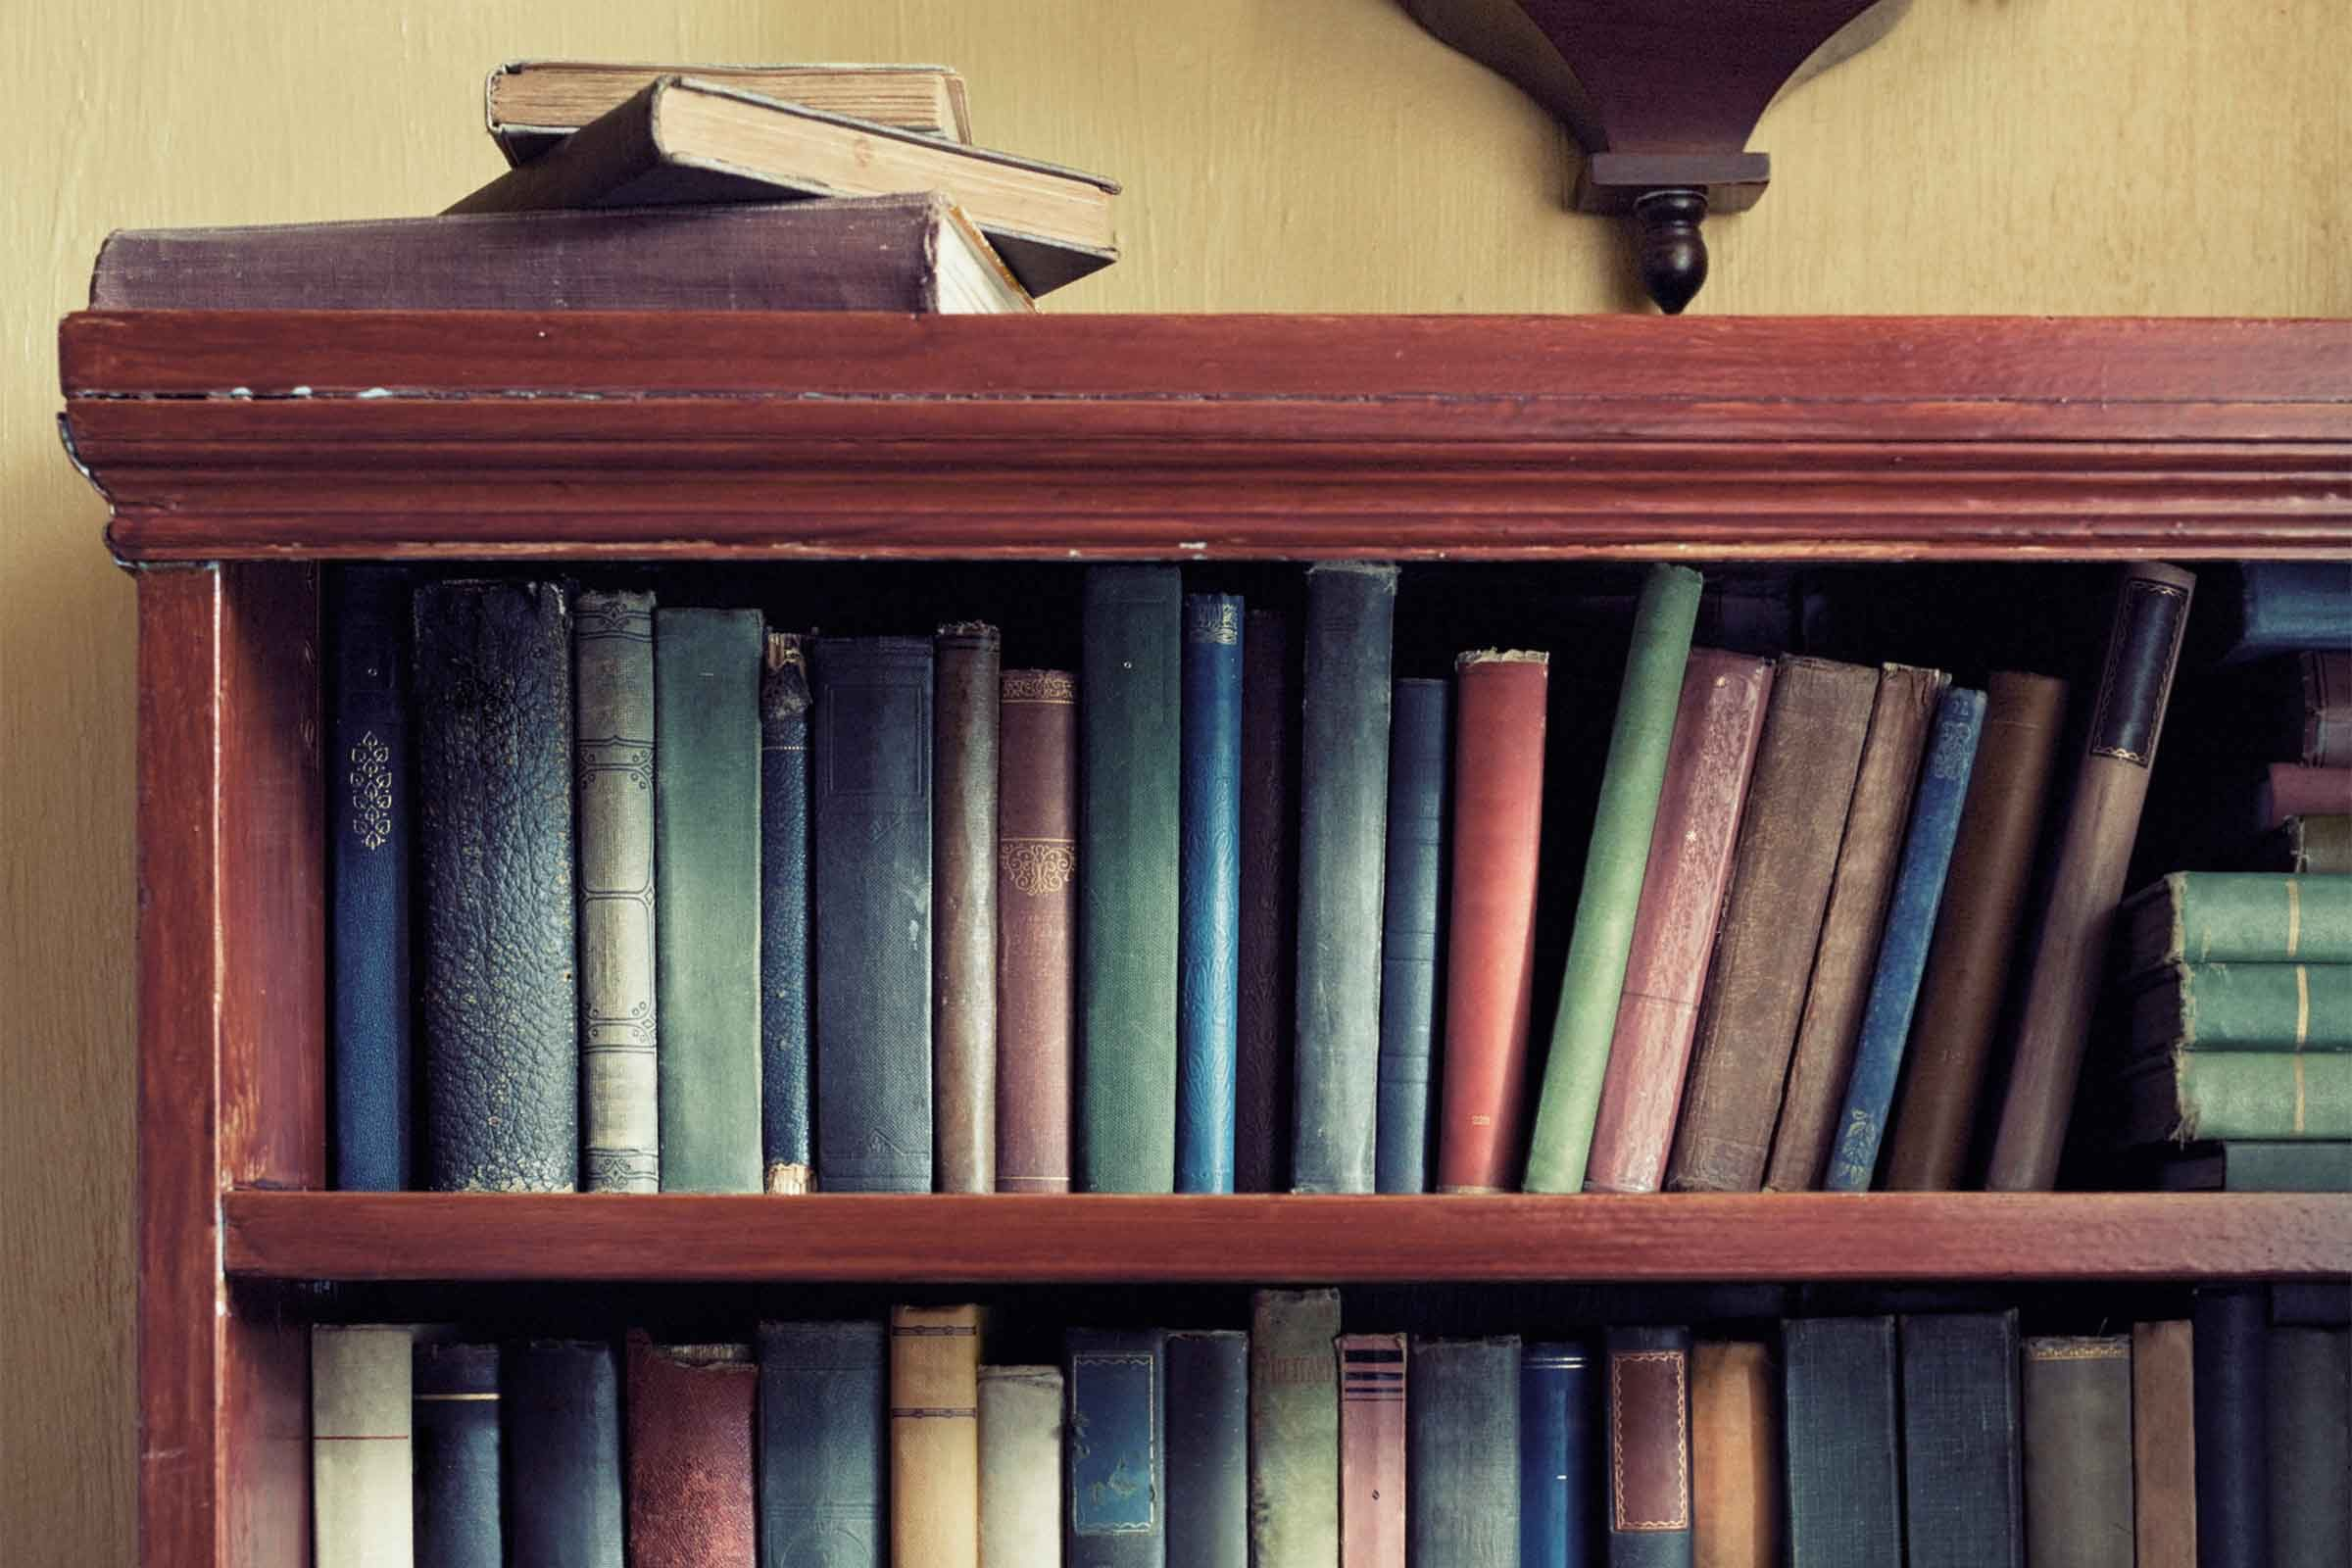 Pictures Of Bookshelves how to decorate a bookshelf: 8 expert tricks | reader's digest